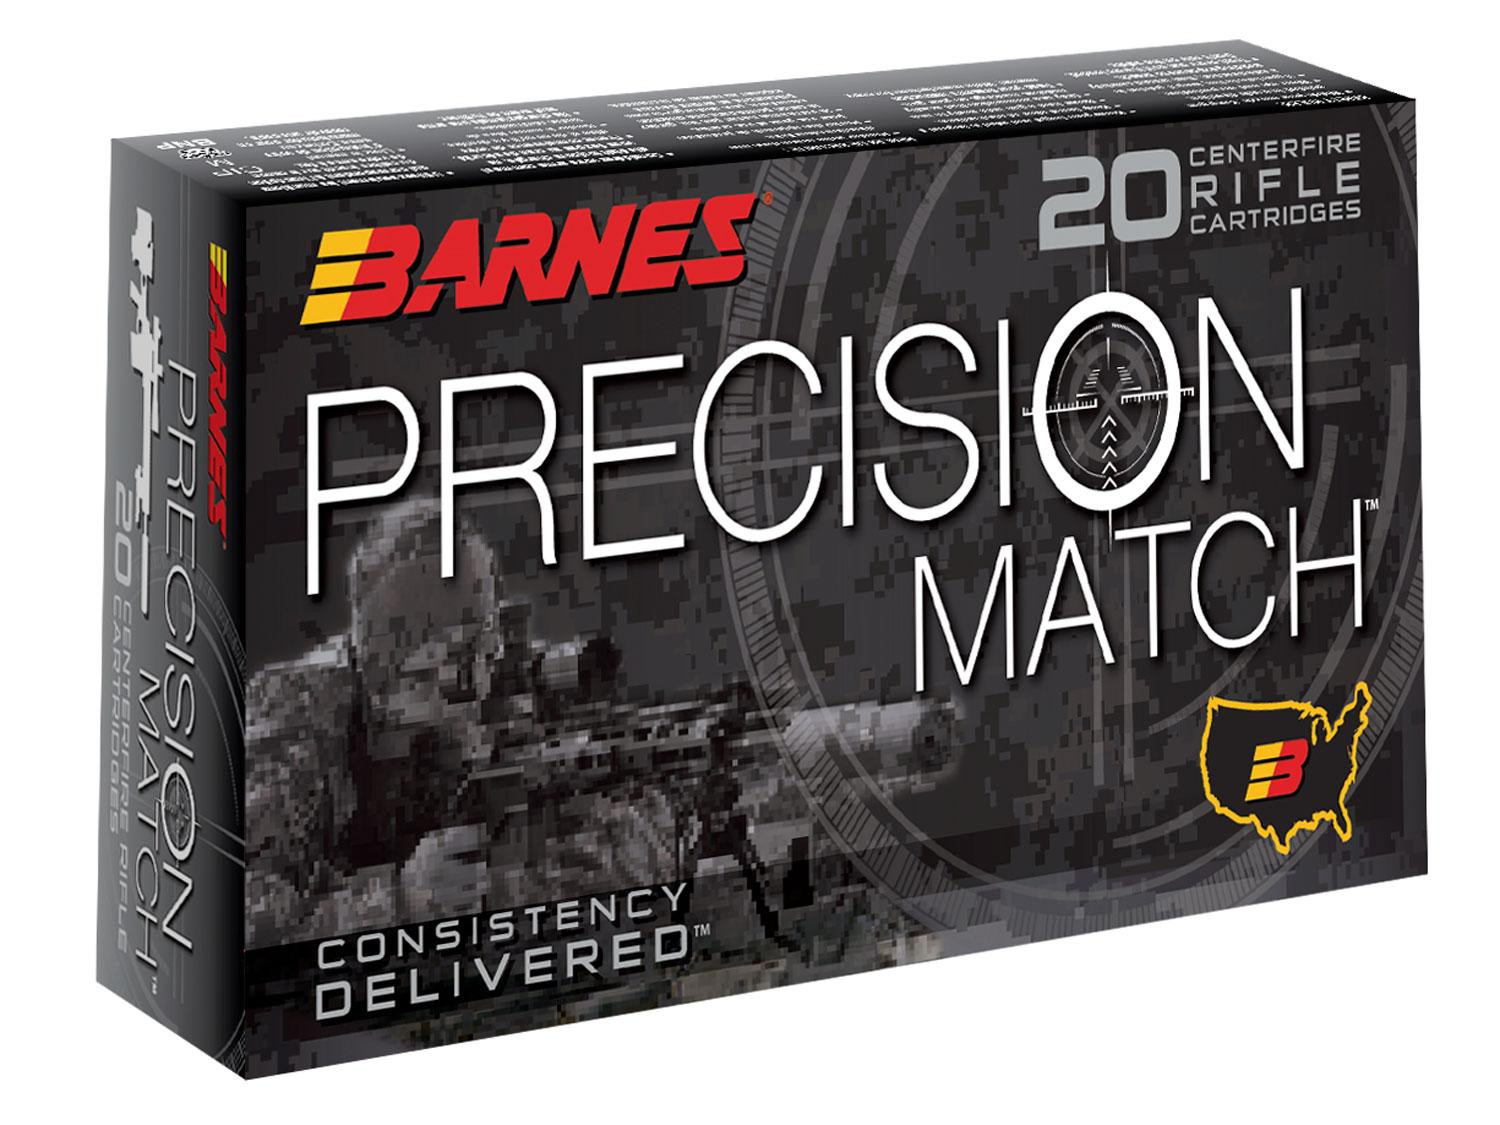 Barnes Bullets 30166 Precision Match 6.5 Creedmoor 140 Gr Open Tip Match Bt 20 Bx/10 Cs